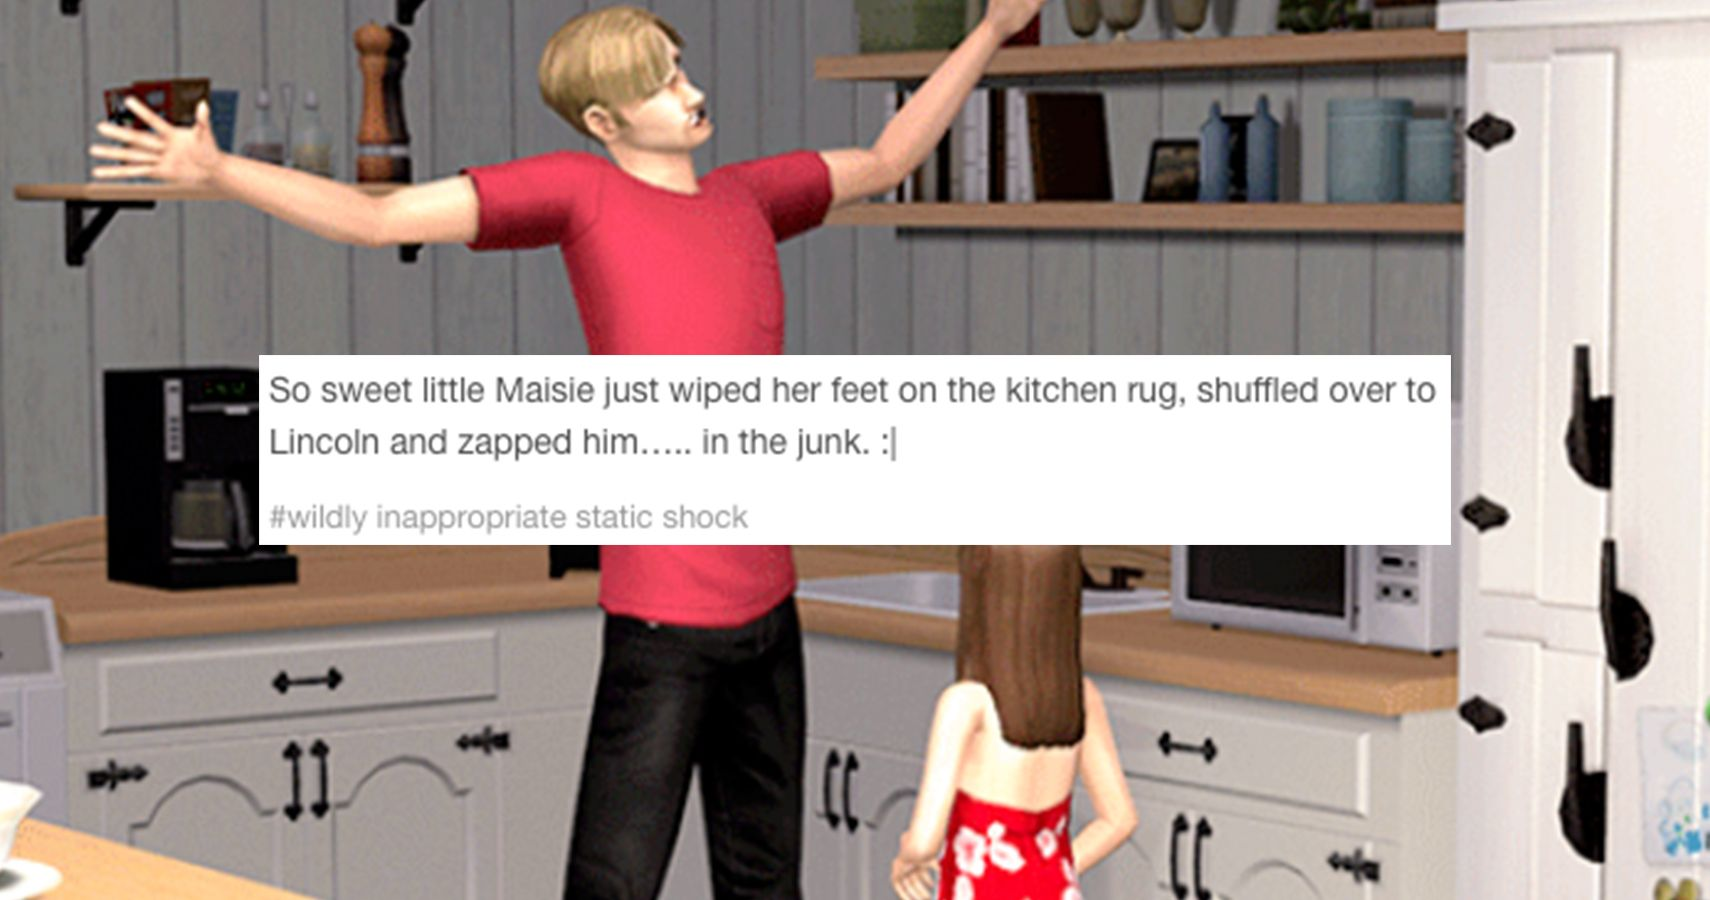 15 Of The Most Inappropriate Tumblr Posts About The Sims